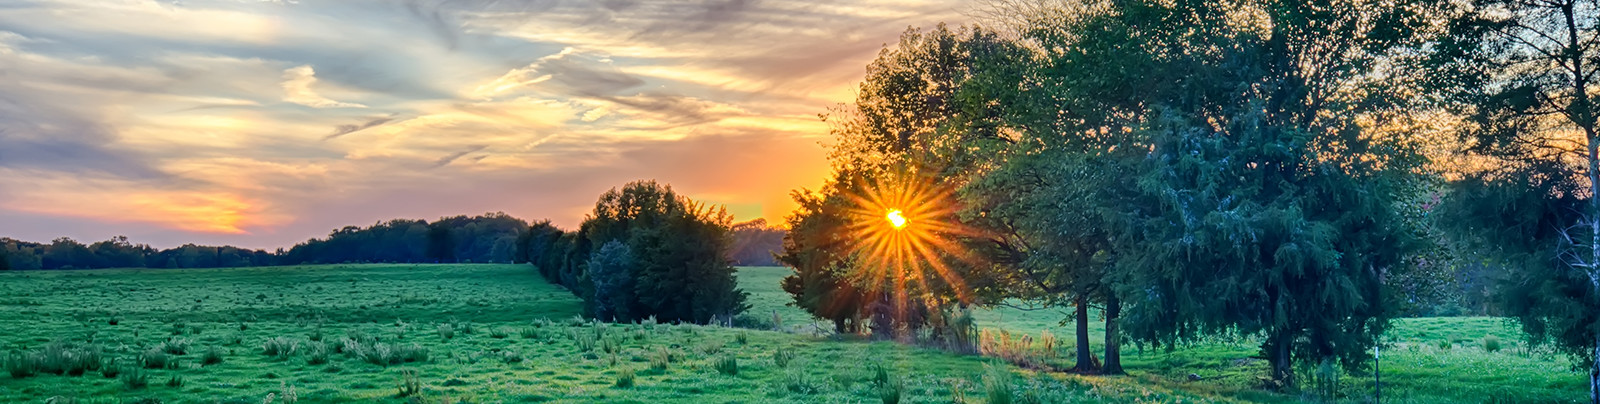 Home Banner - Sunset over green pasture